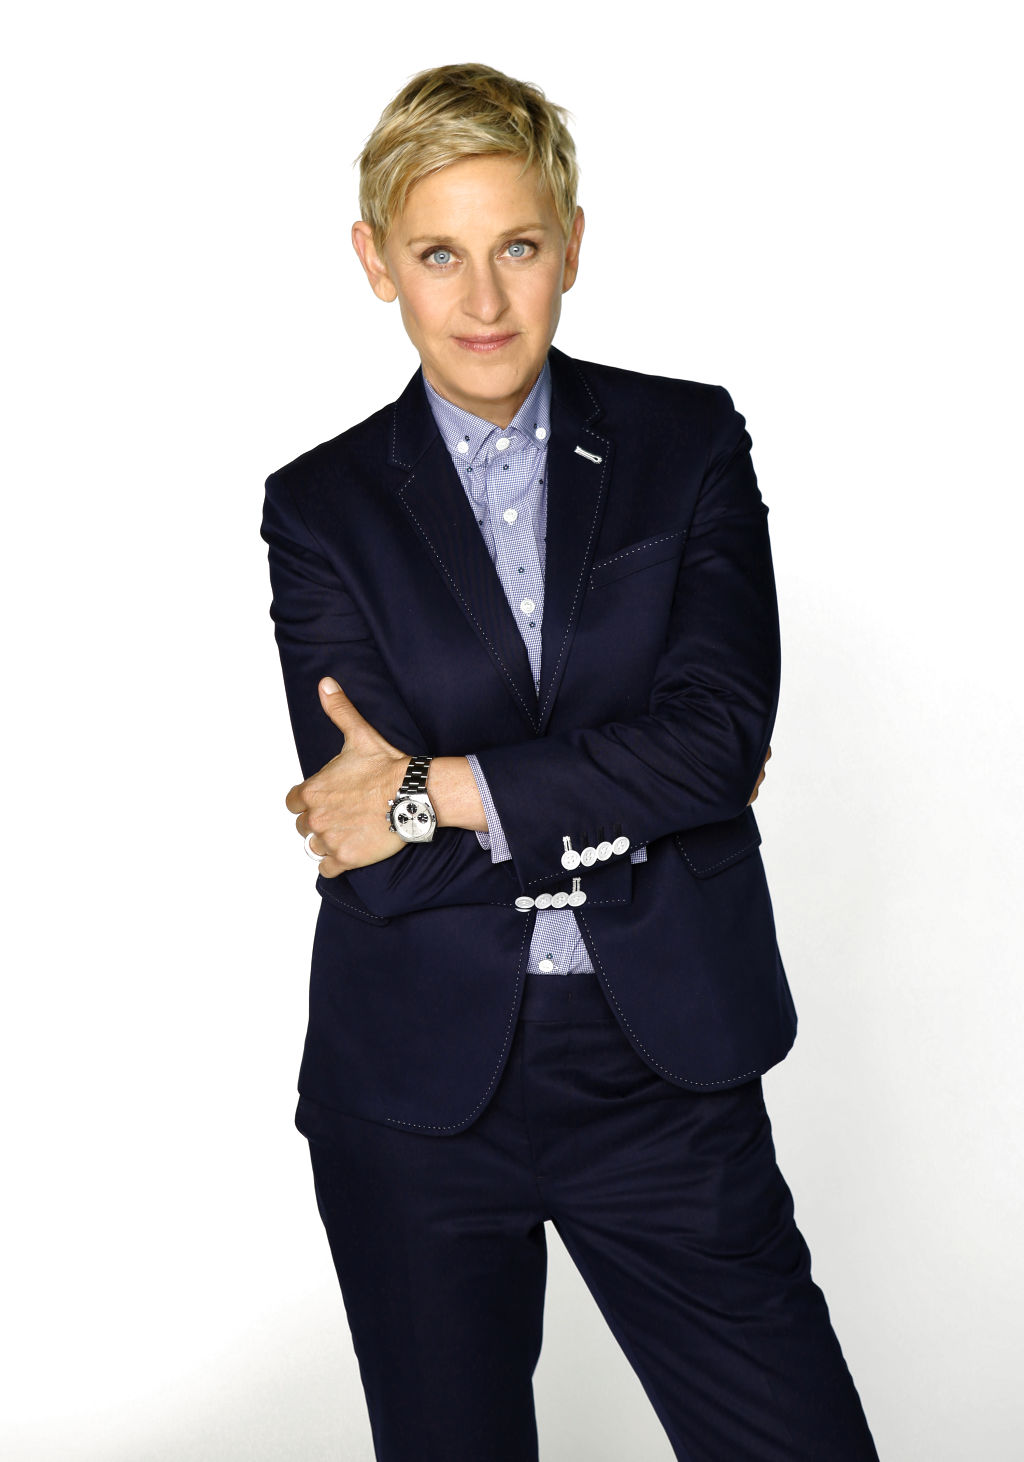 ellen degeneres youtube